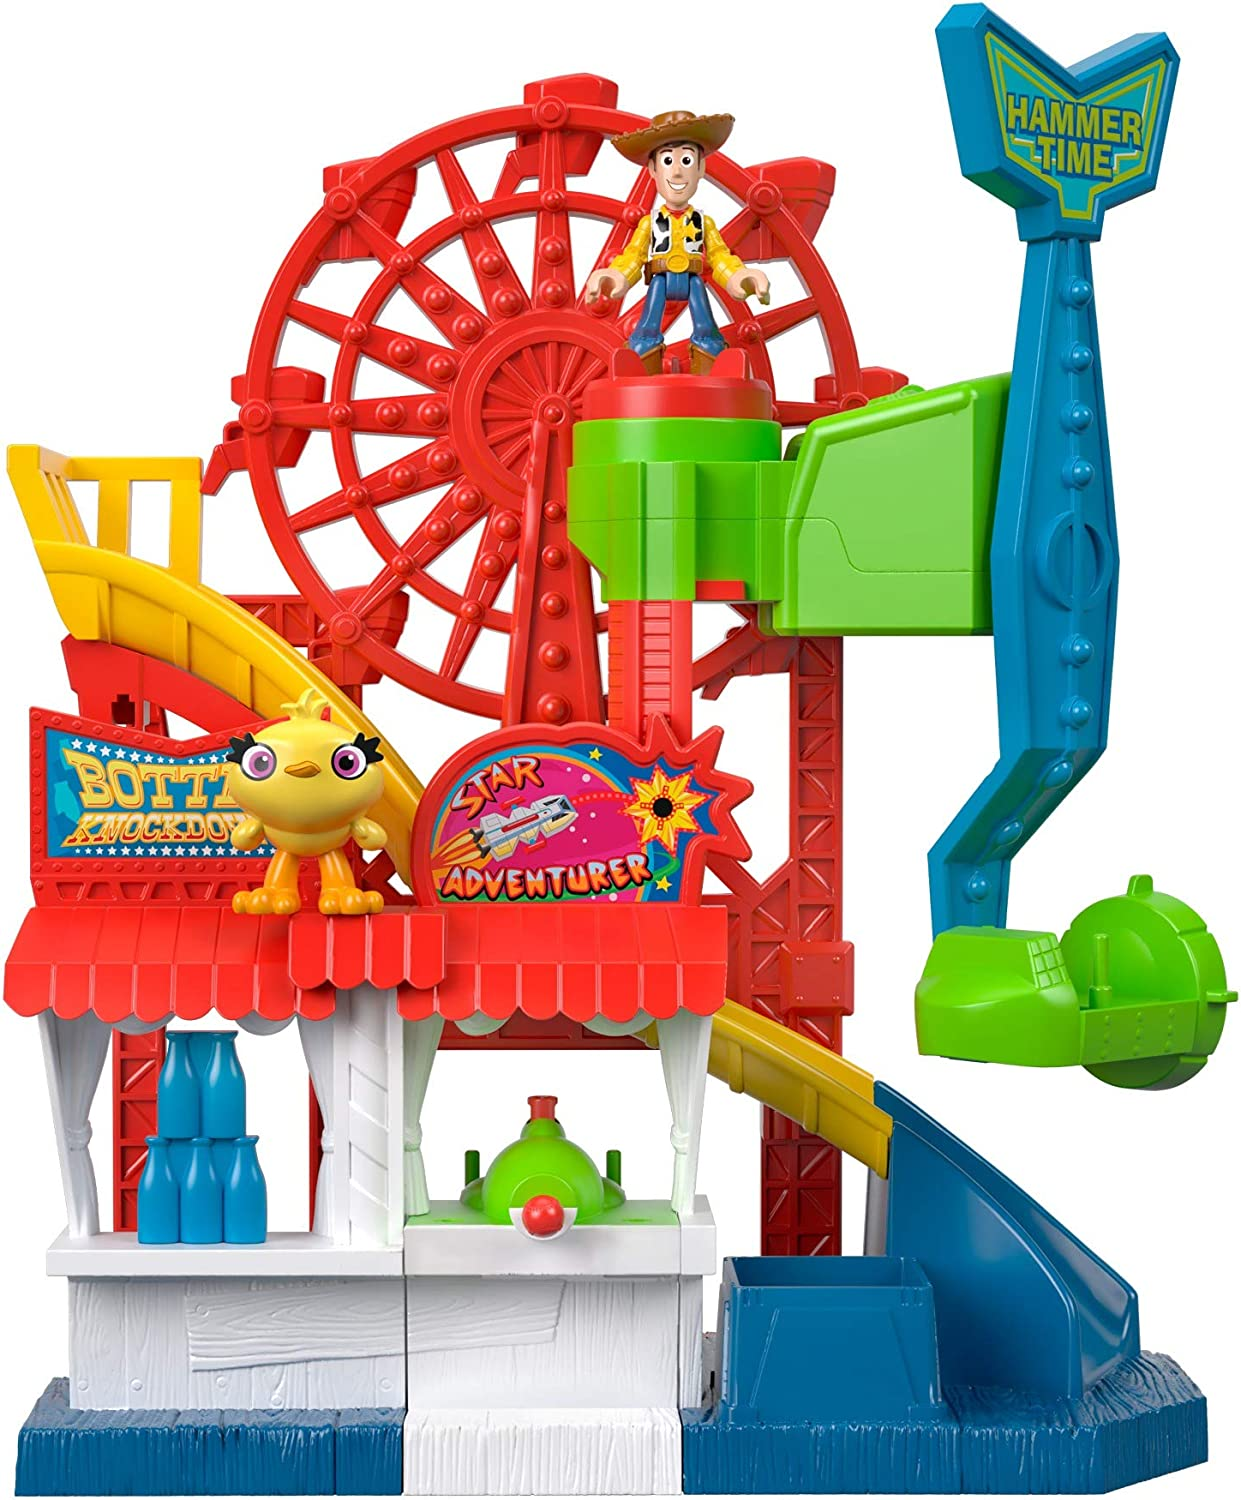 Fisher-Price Disney Pixar Toy Story 4 Carnival Playset